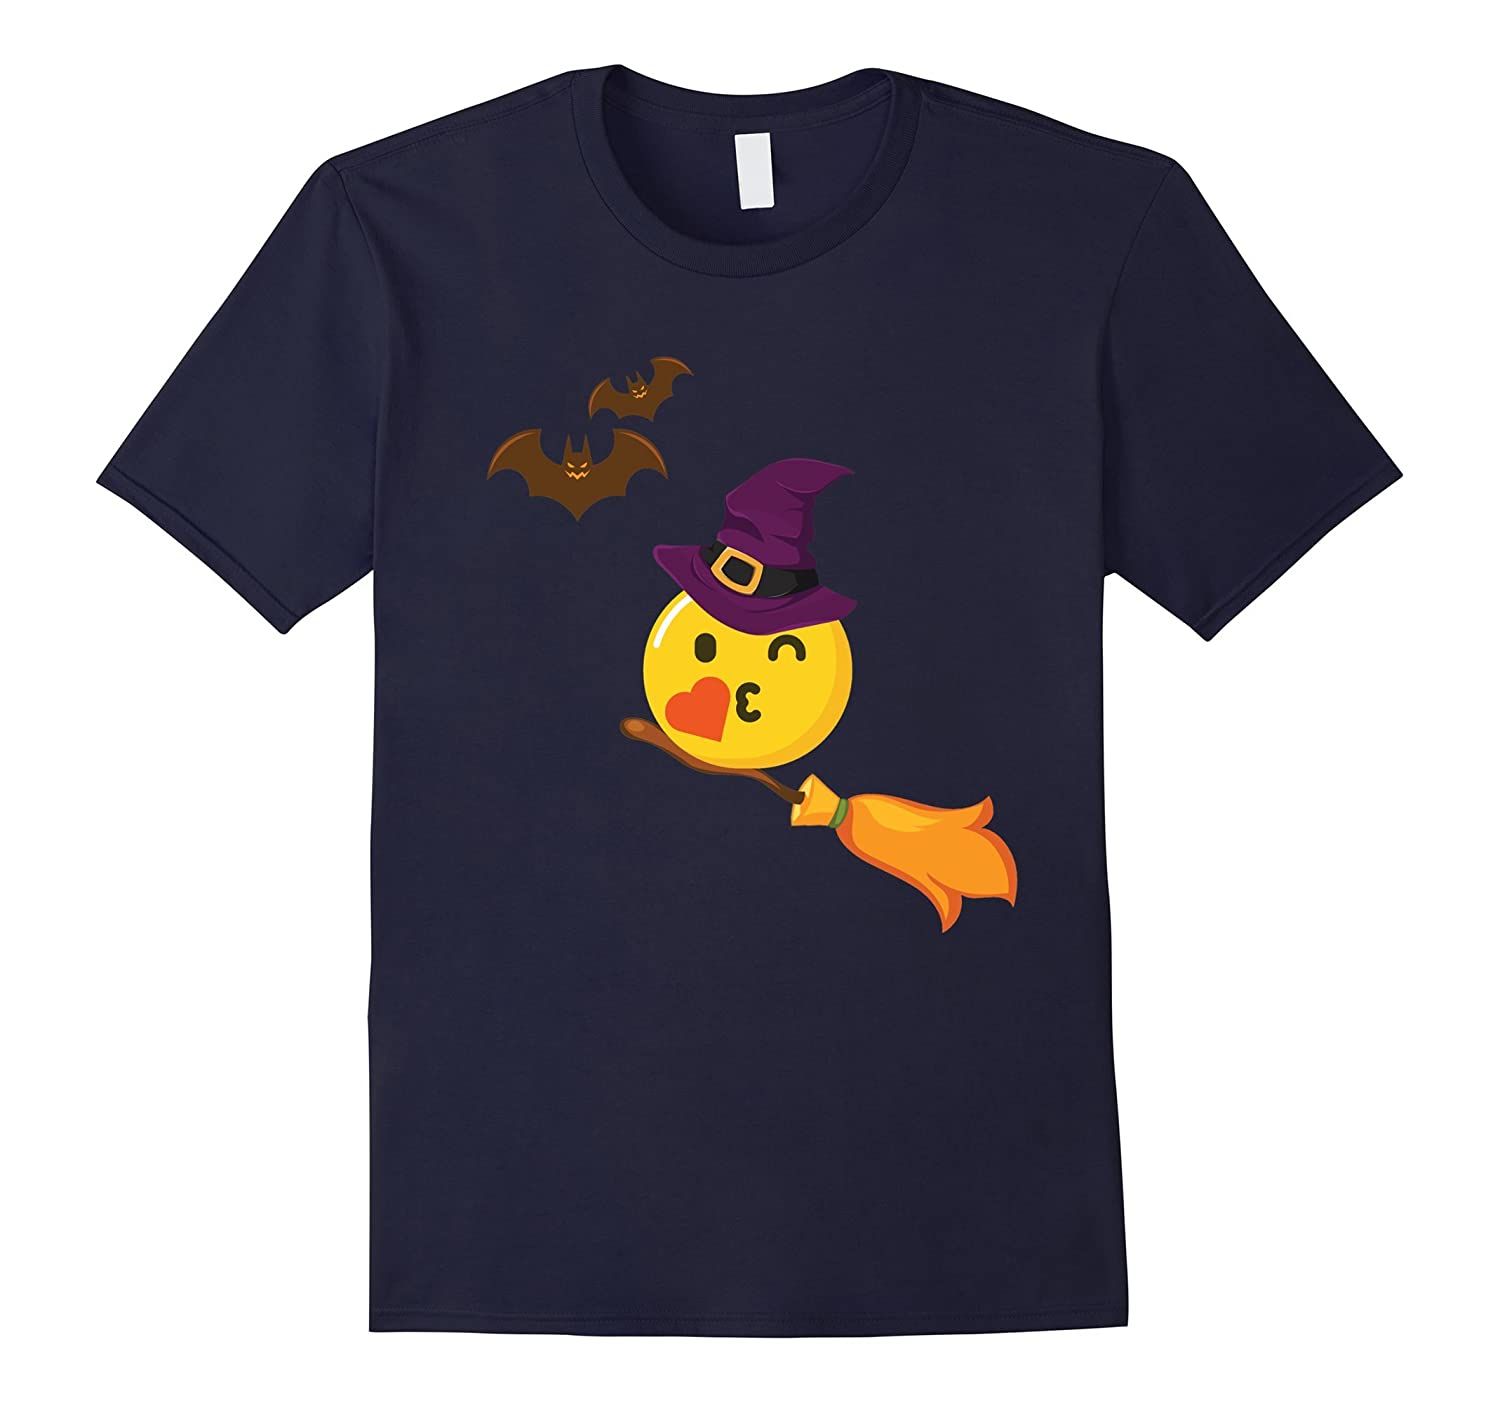 Witch Emoji Halloween Graphic T-shirt Hat And Bats-Rose